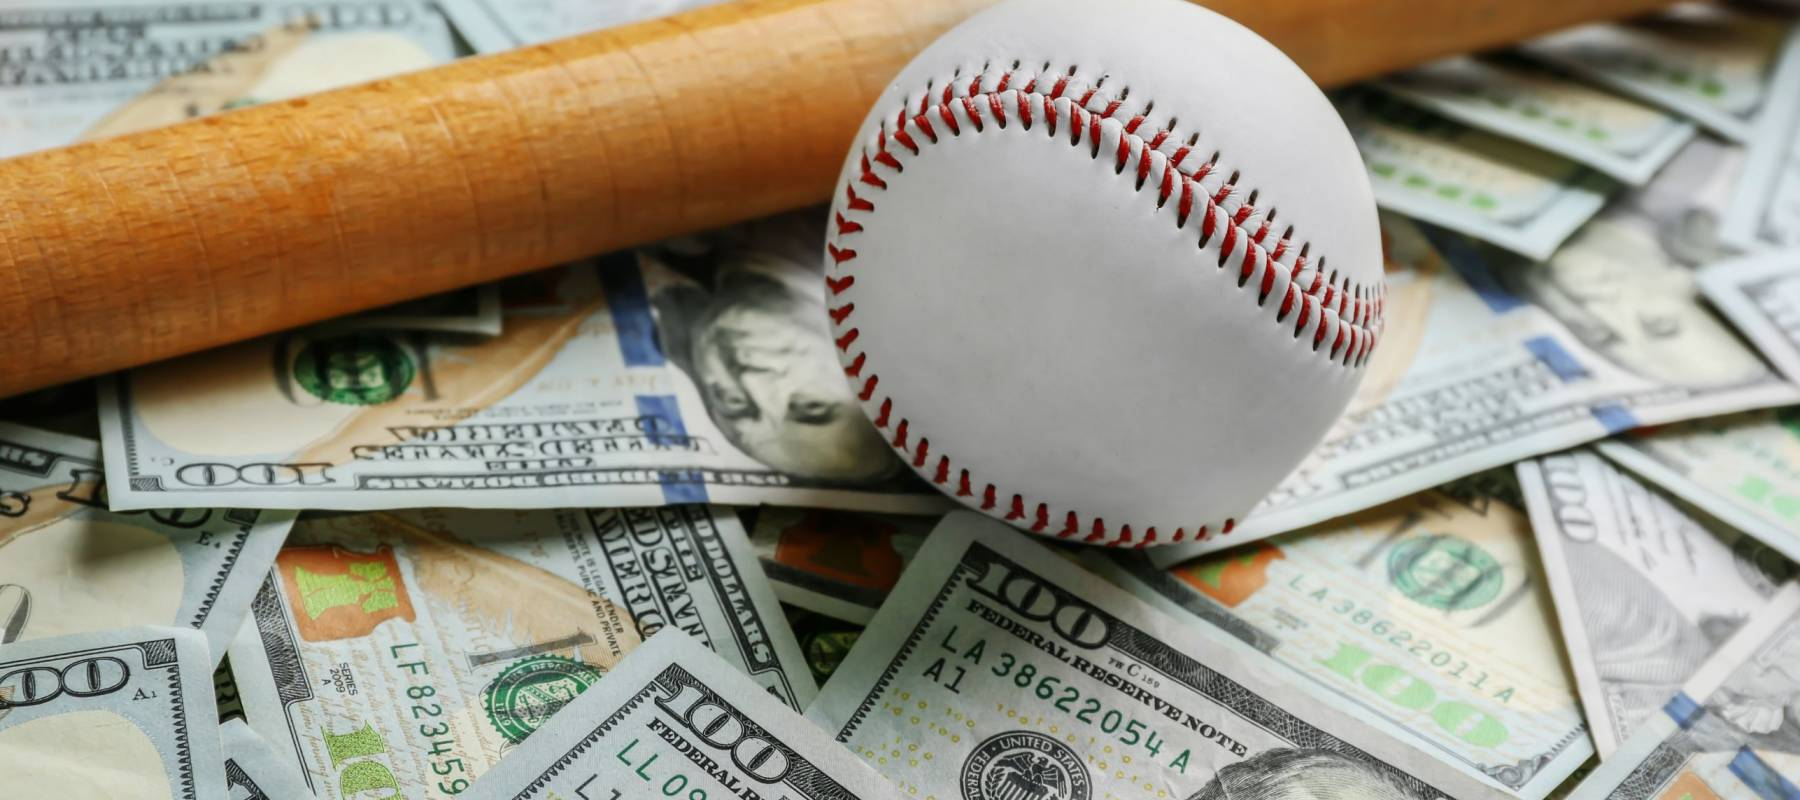 Major Assets The Most Valuable Teams In Baseball